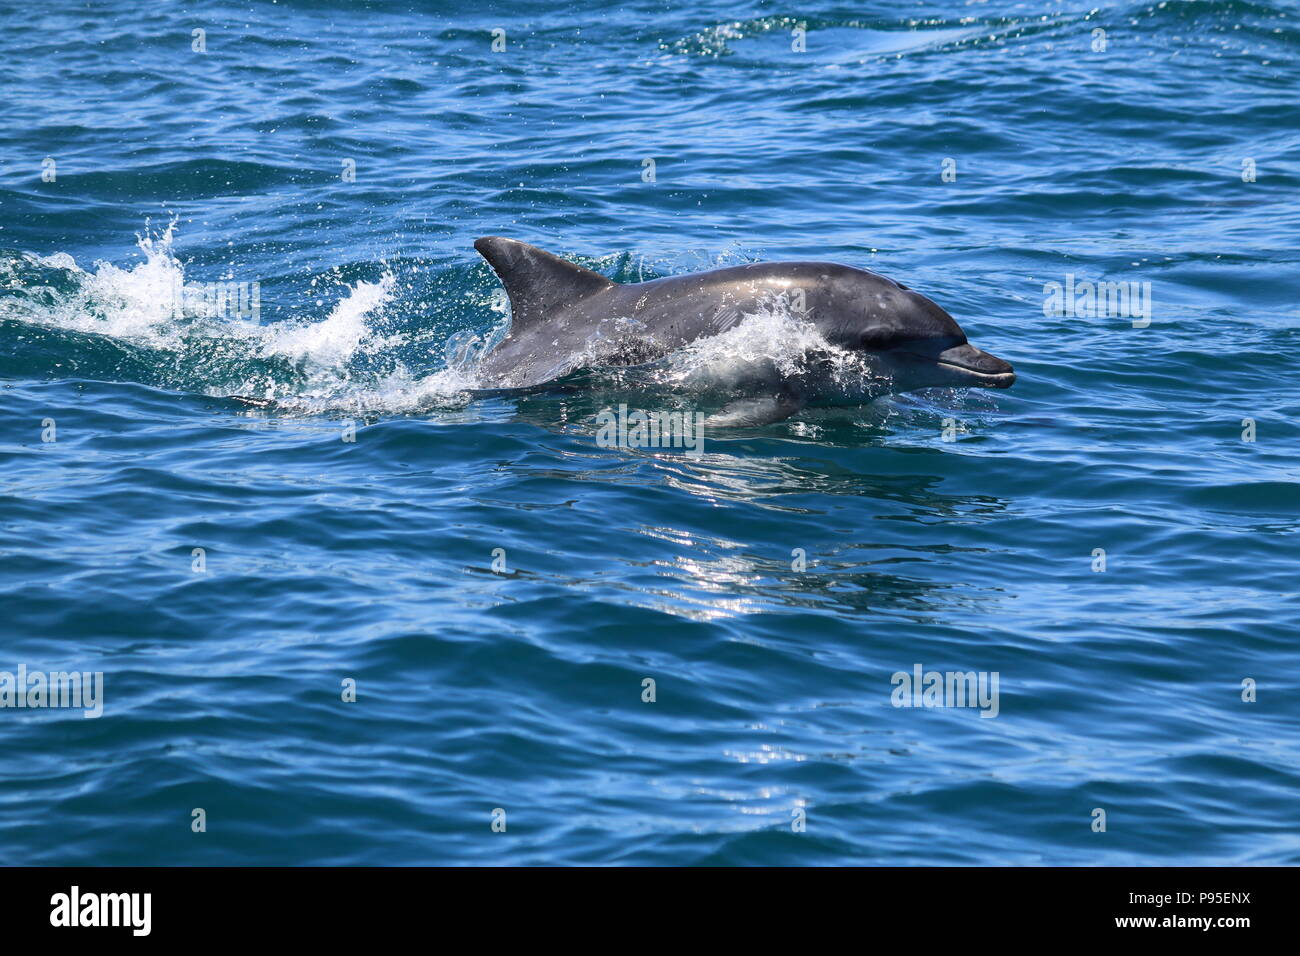 CapeTown Dolphin - Stock Image